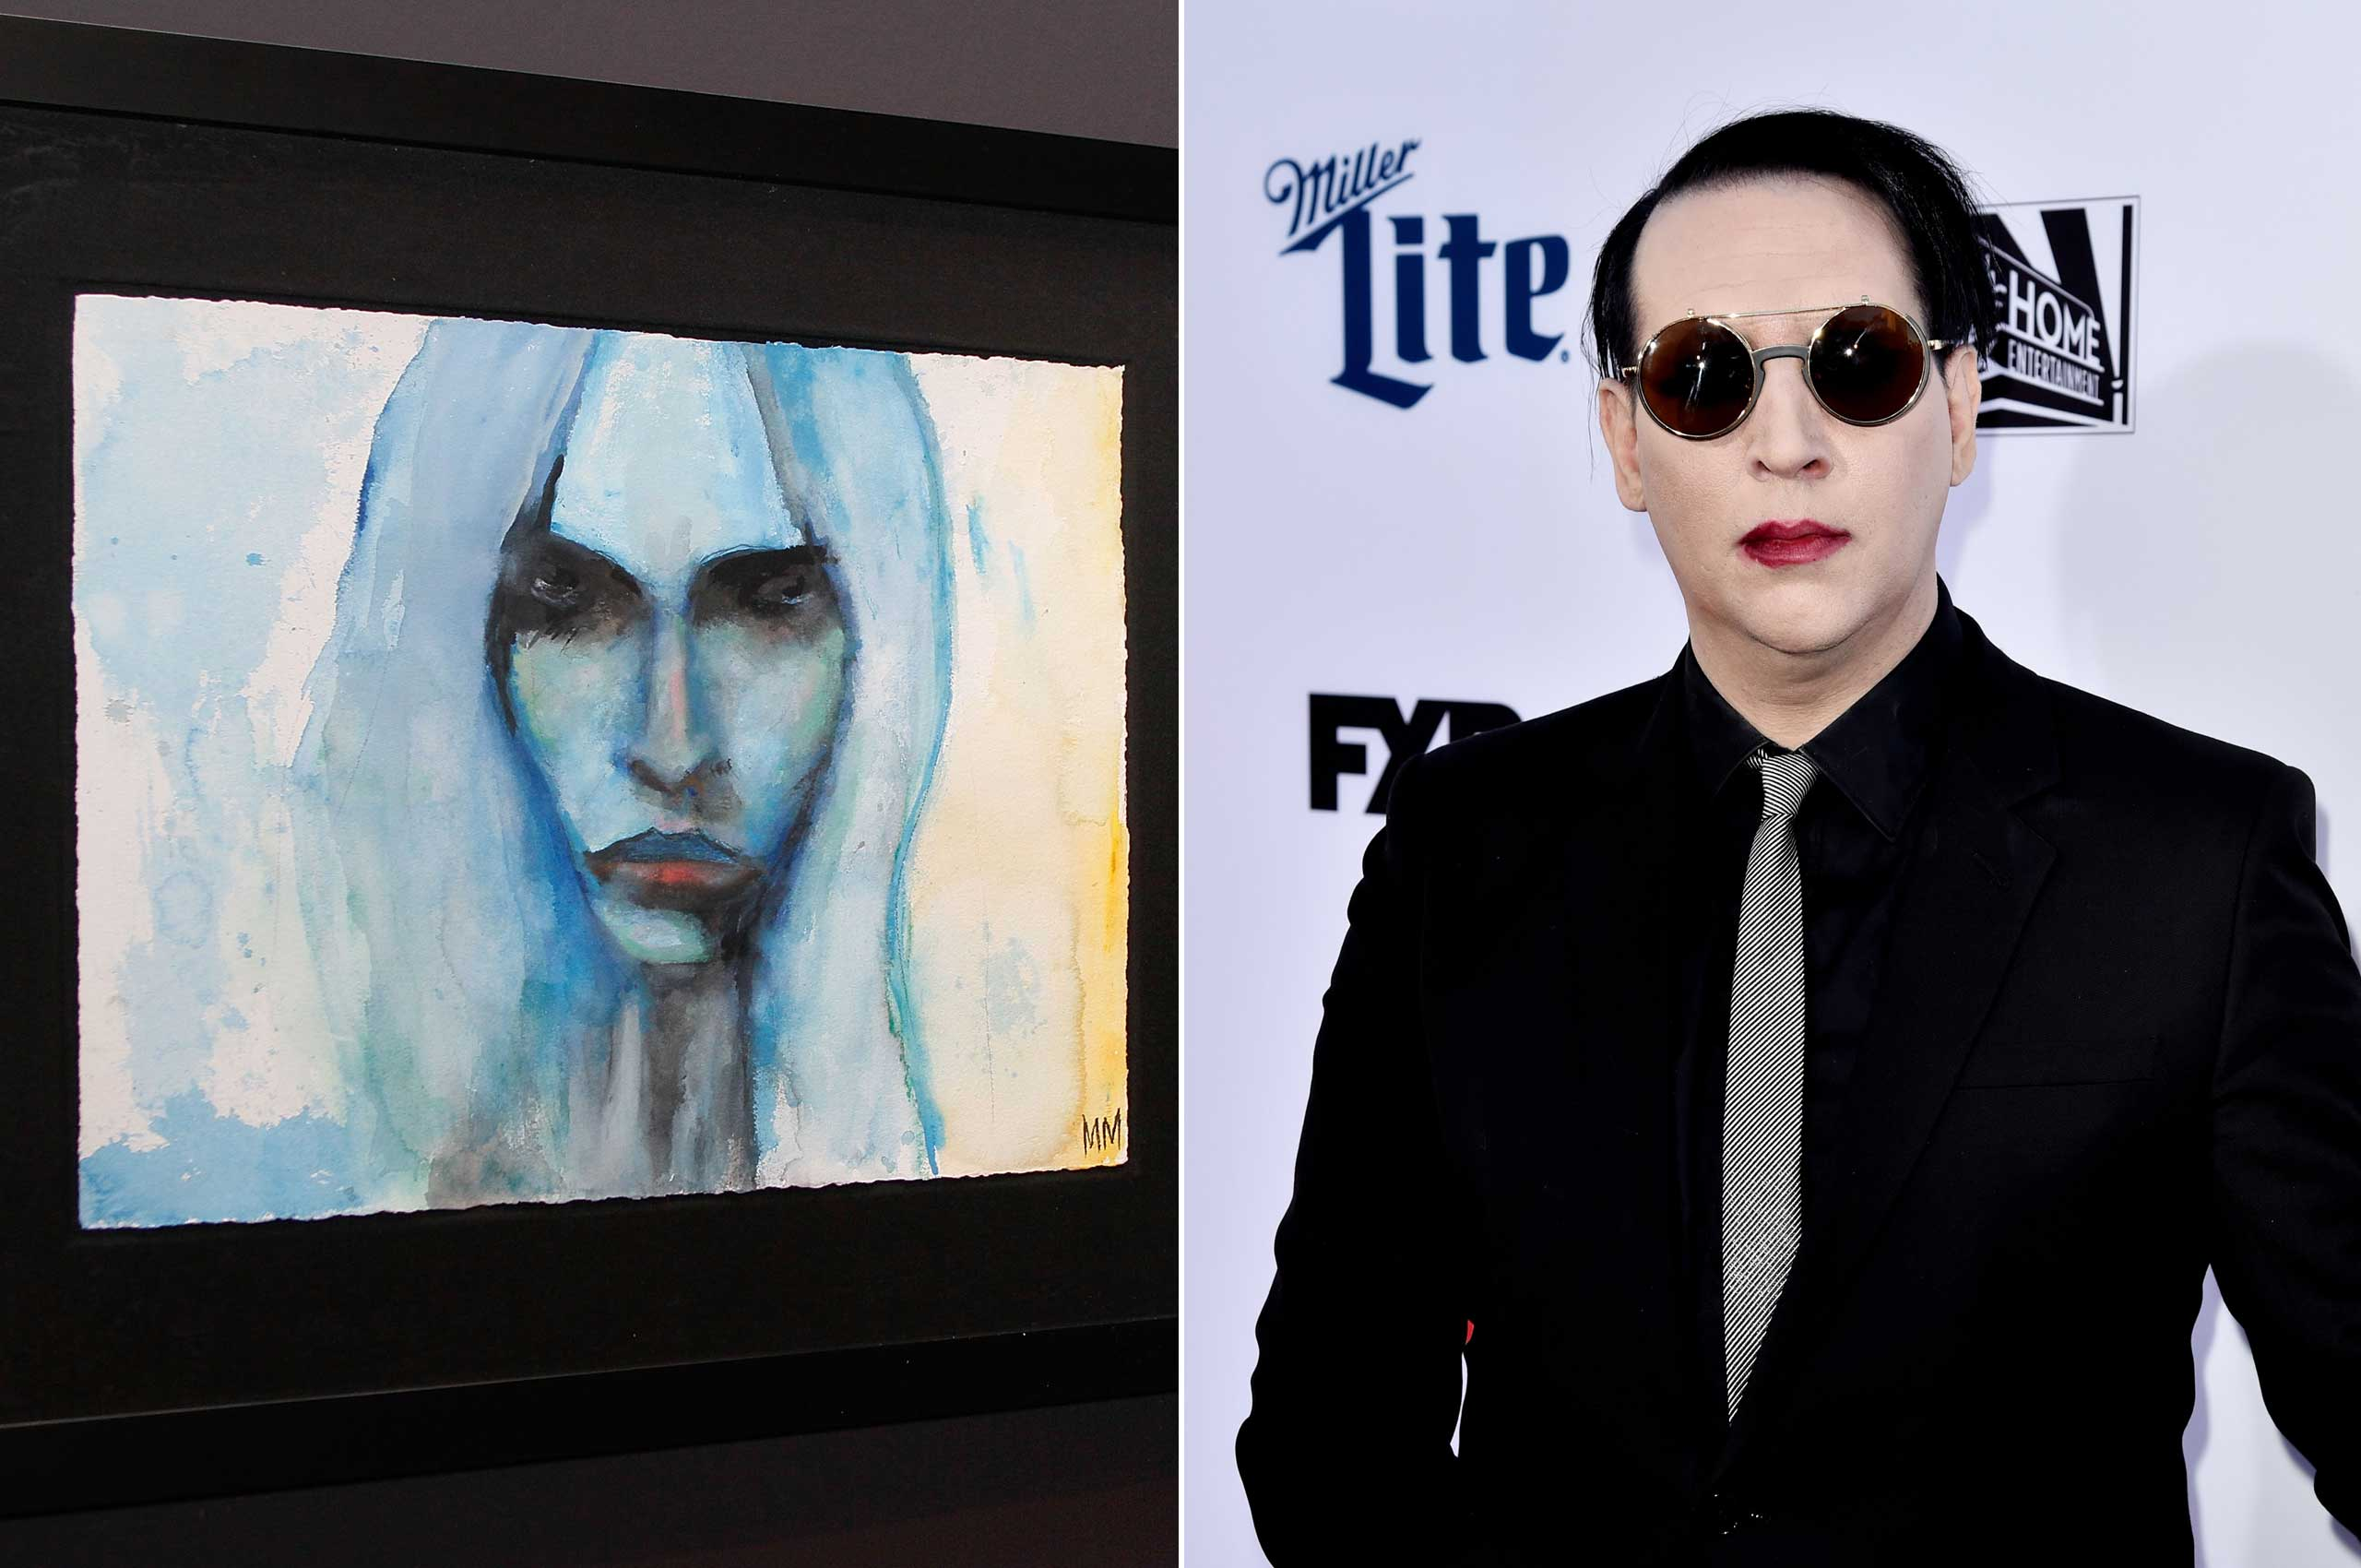 This painting from Marilyn Manson's  The Path of Misery  exhibition was featured in Mexico City in 2011.